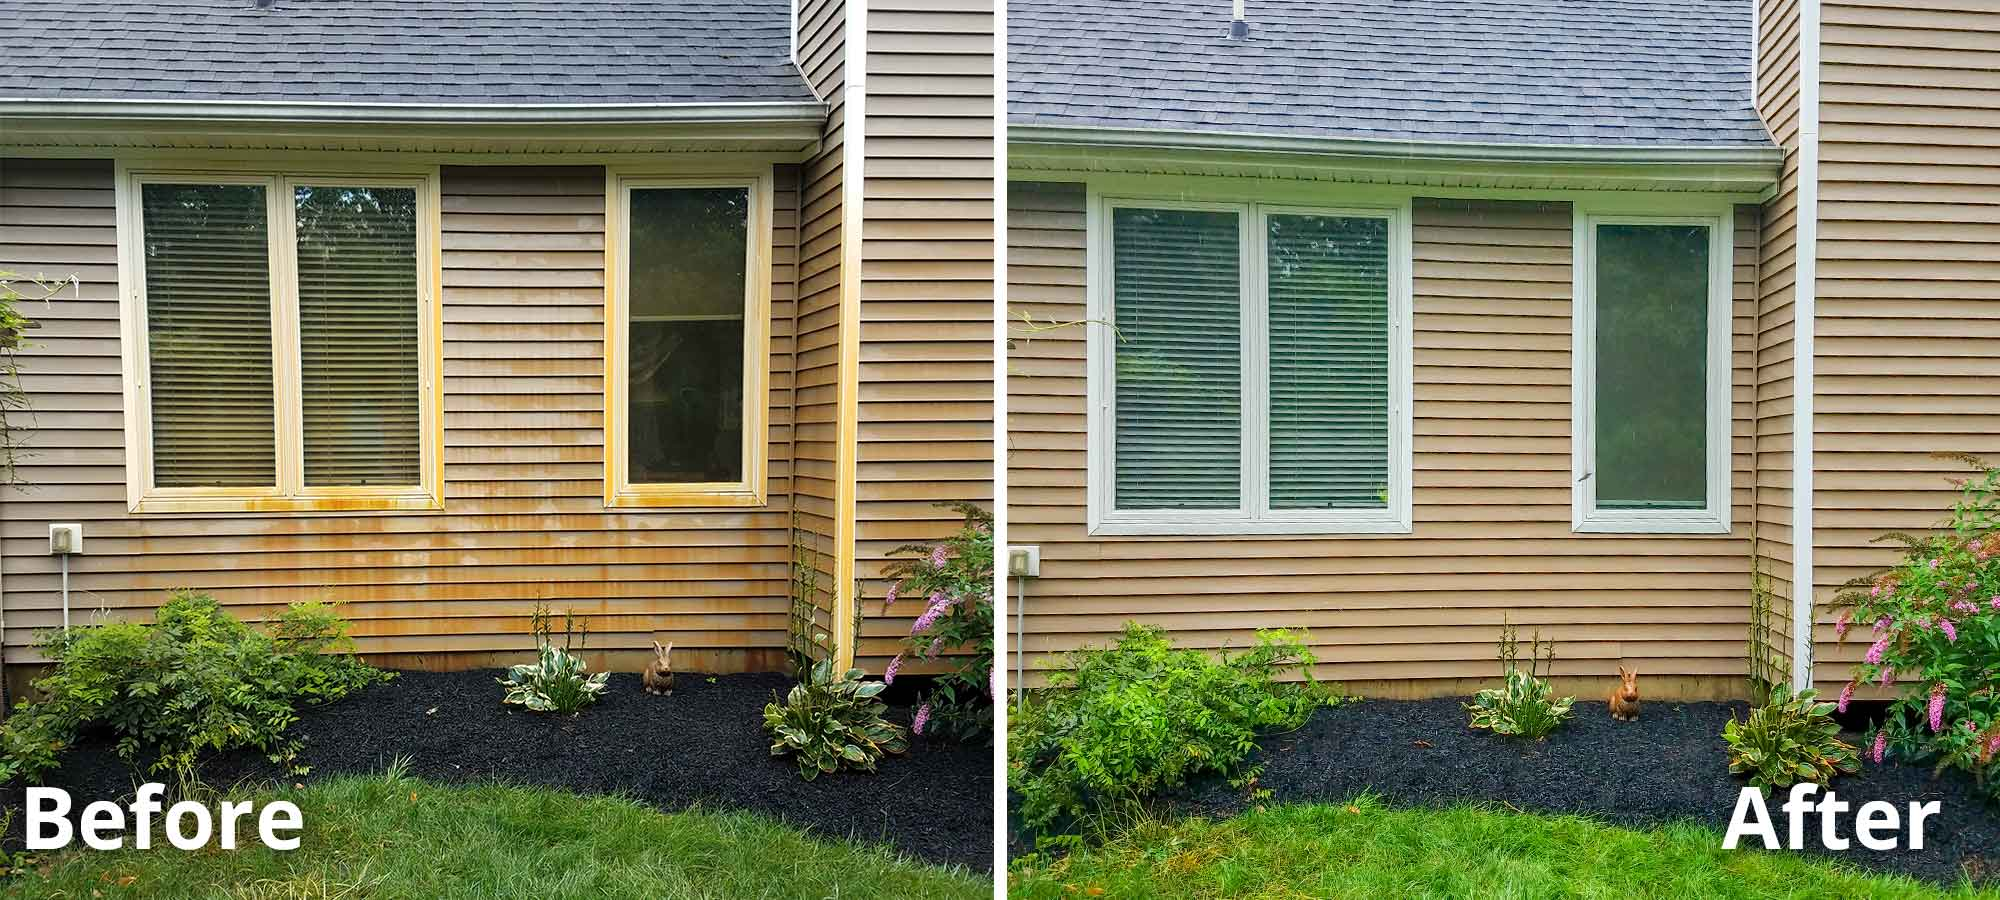 Power Washing Services Near Me | New Jersey Exterior House